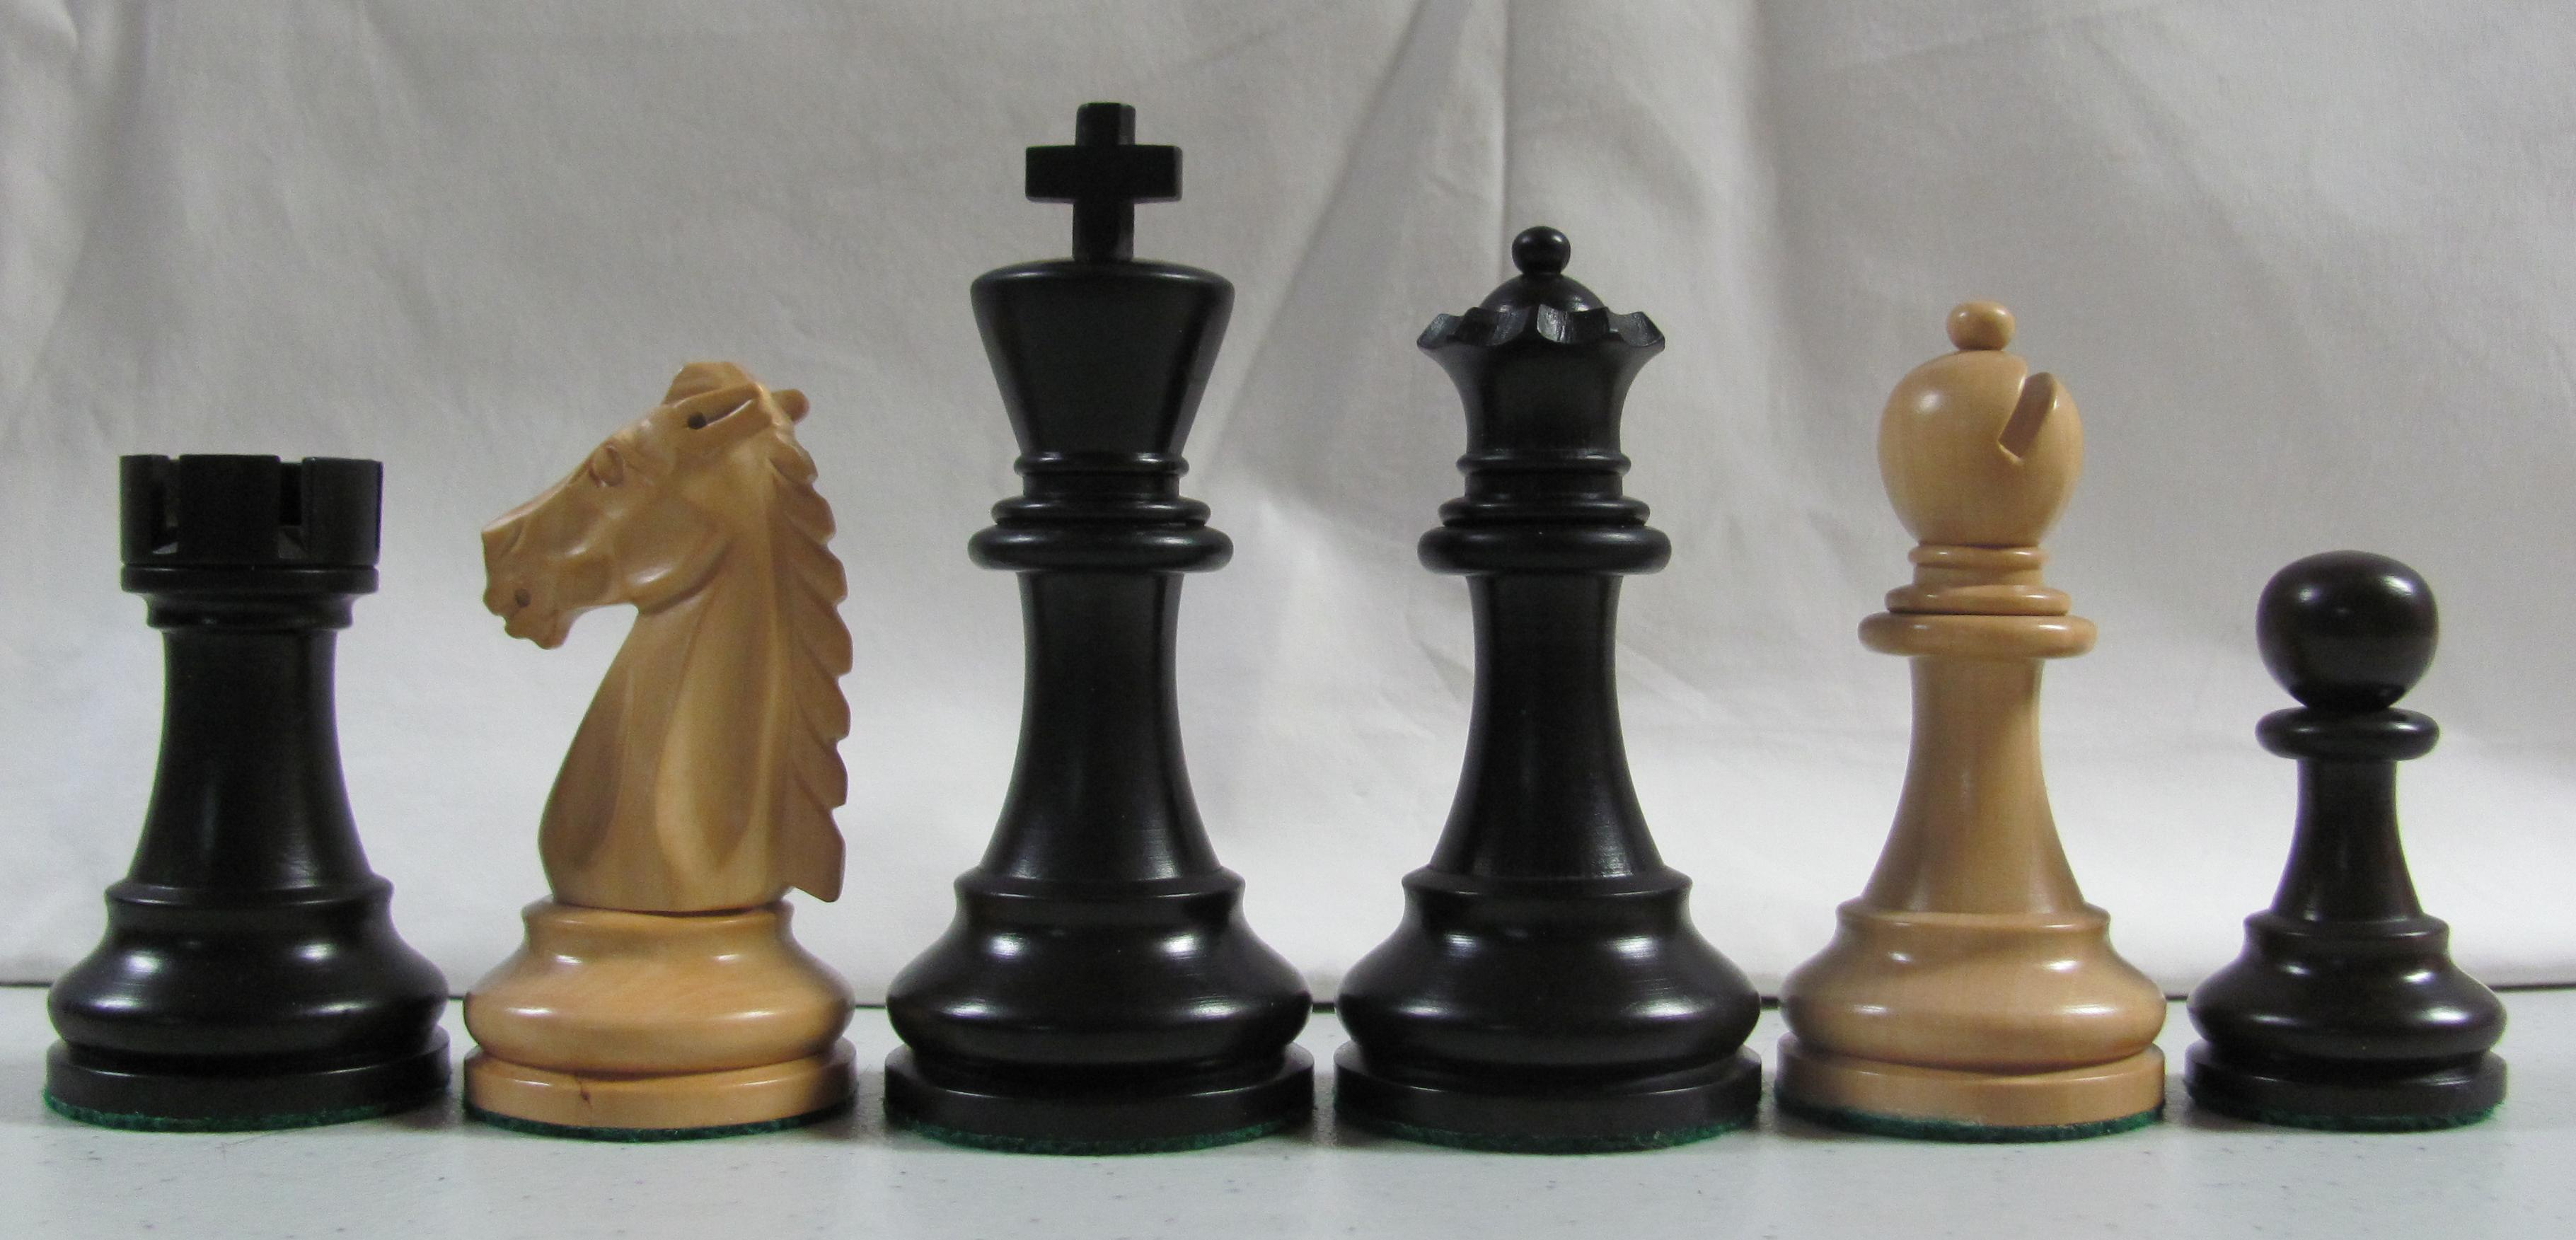 Detailed Chess Set Part - 31: Chess Pieces